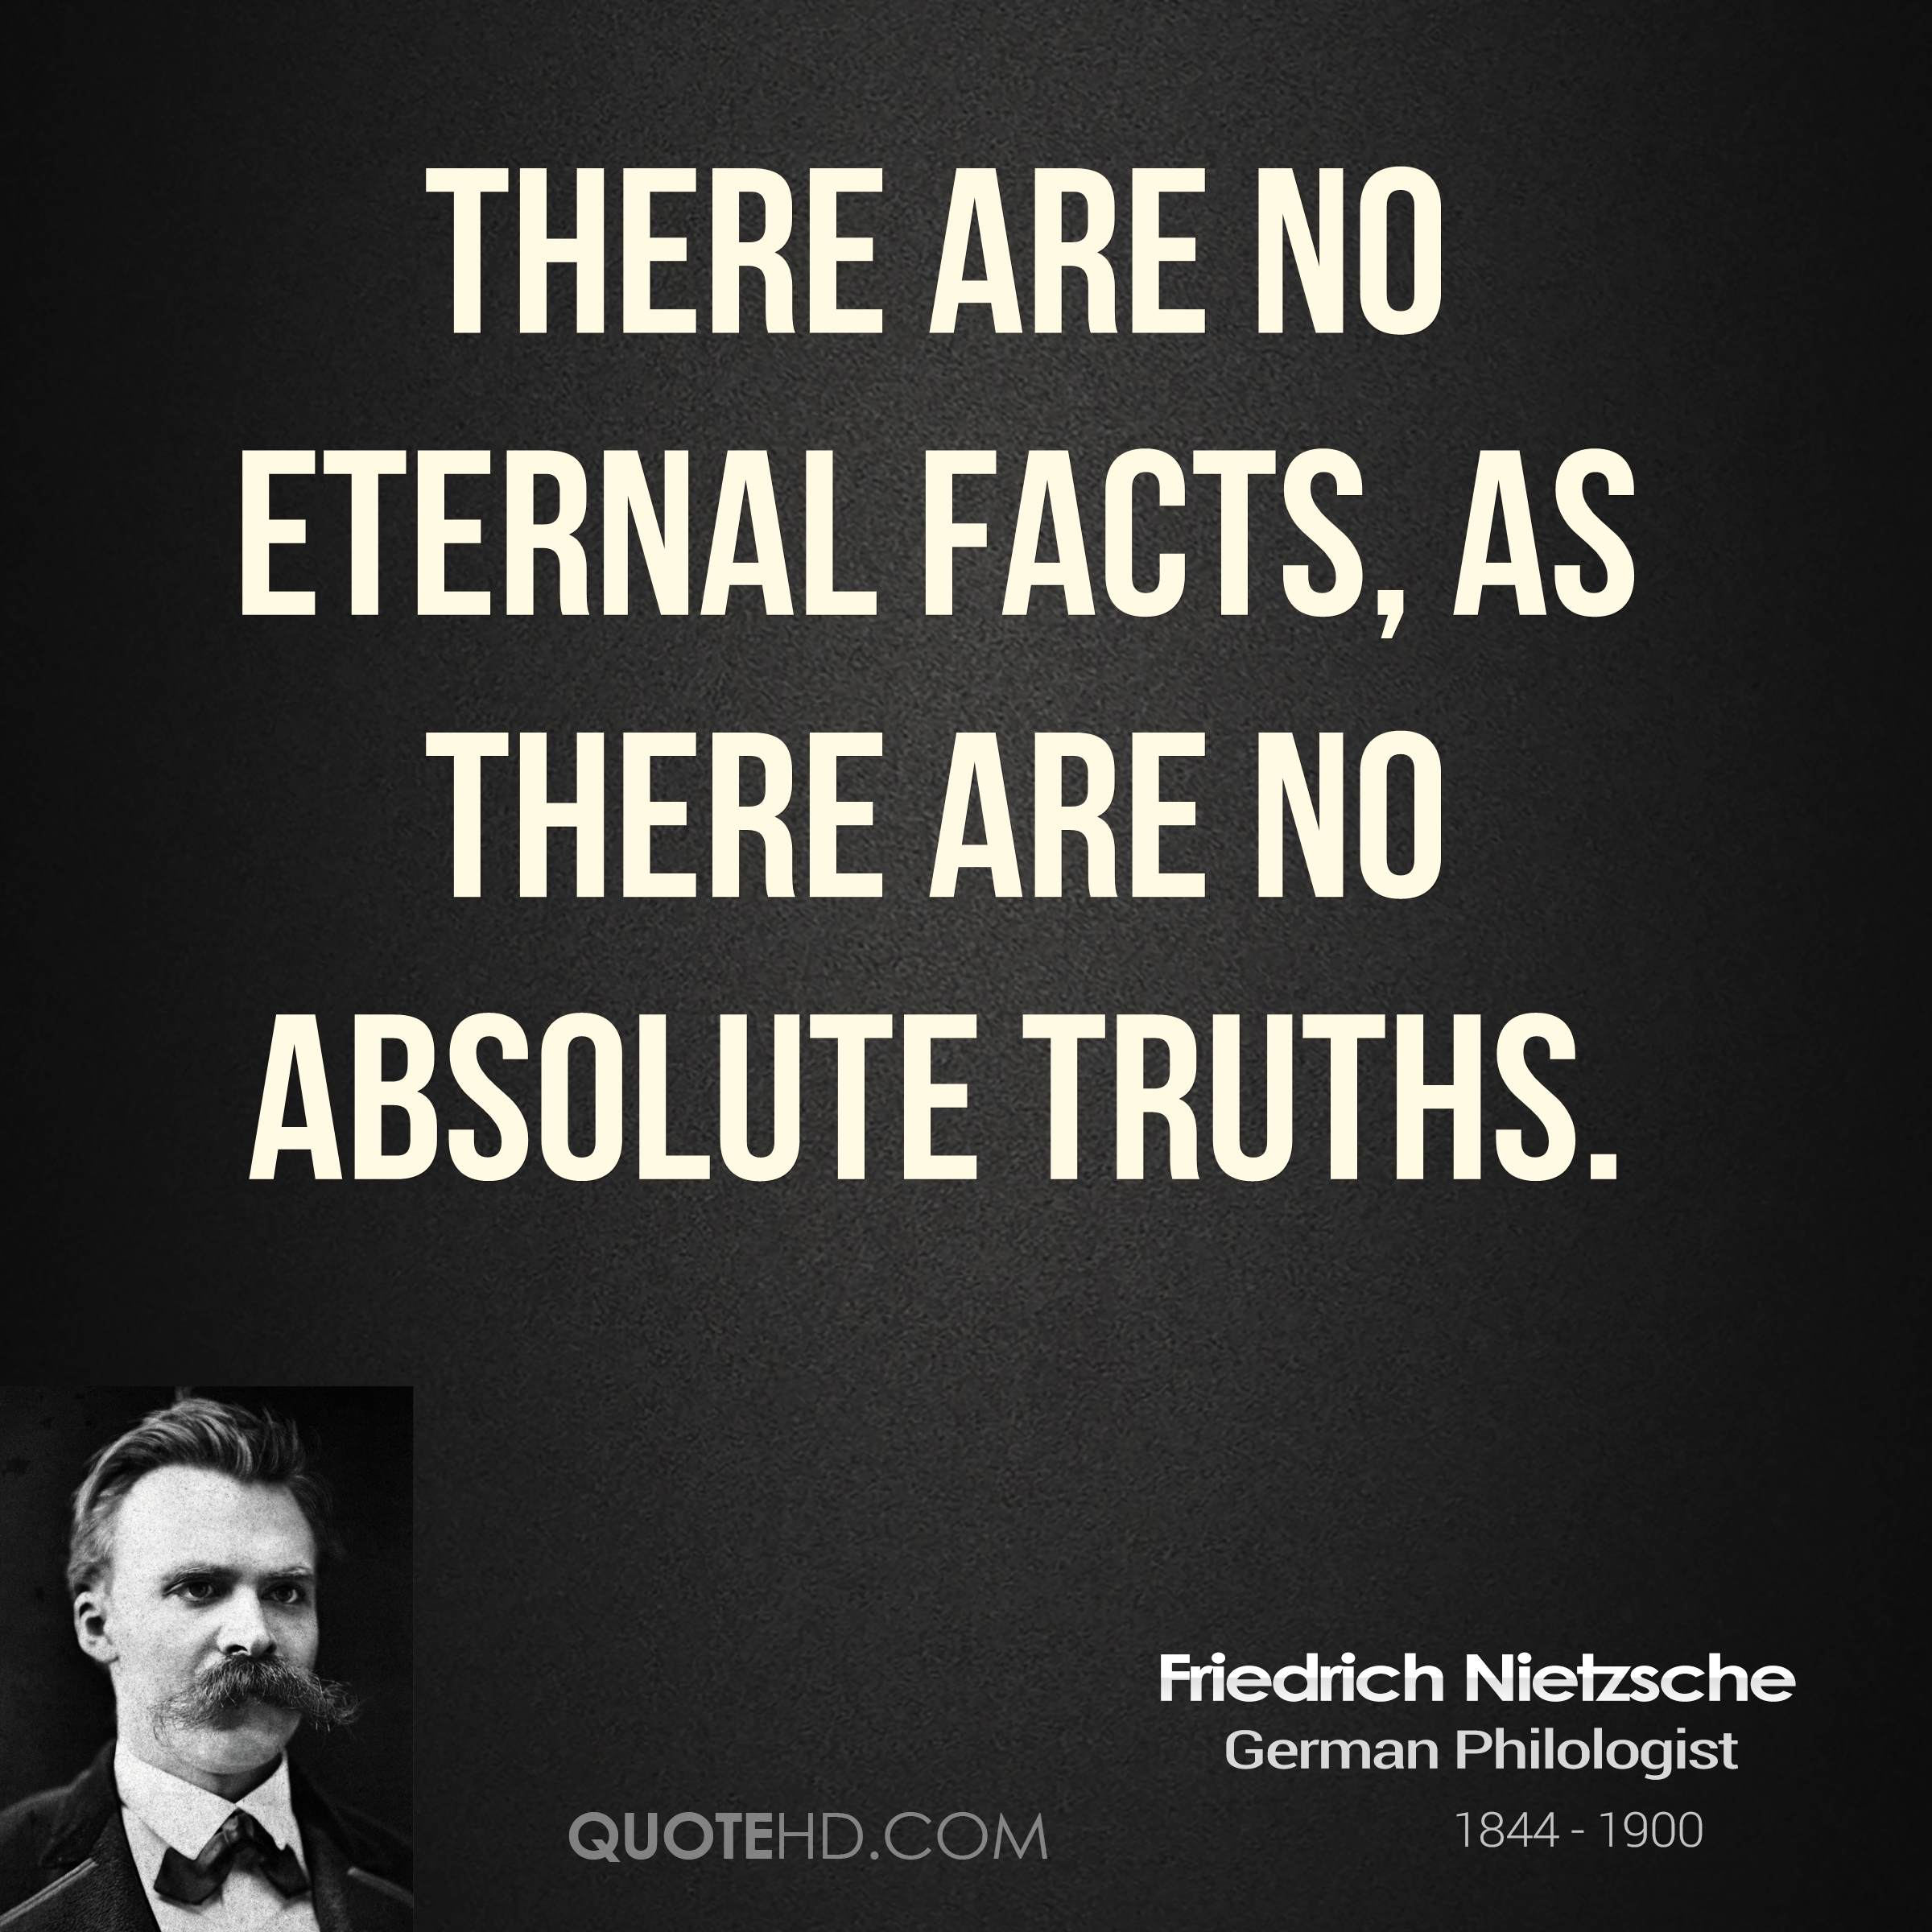 on truth and lies in a nonmoral sense essay On friedrich nietzsche's on truth and lies in a nonmoral sense (1873) what is truth this essay, written early in nietzsche's career but unpublished during his lifetime, is taken by many to make the extreme claim that there is no truth, that all of the truths we tell each other are just agreements by social convention.